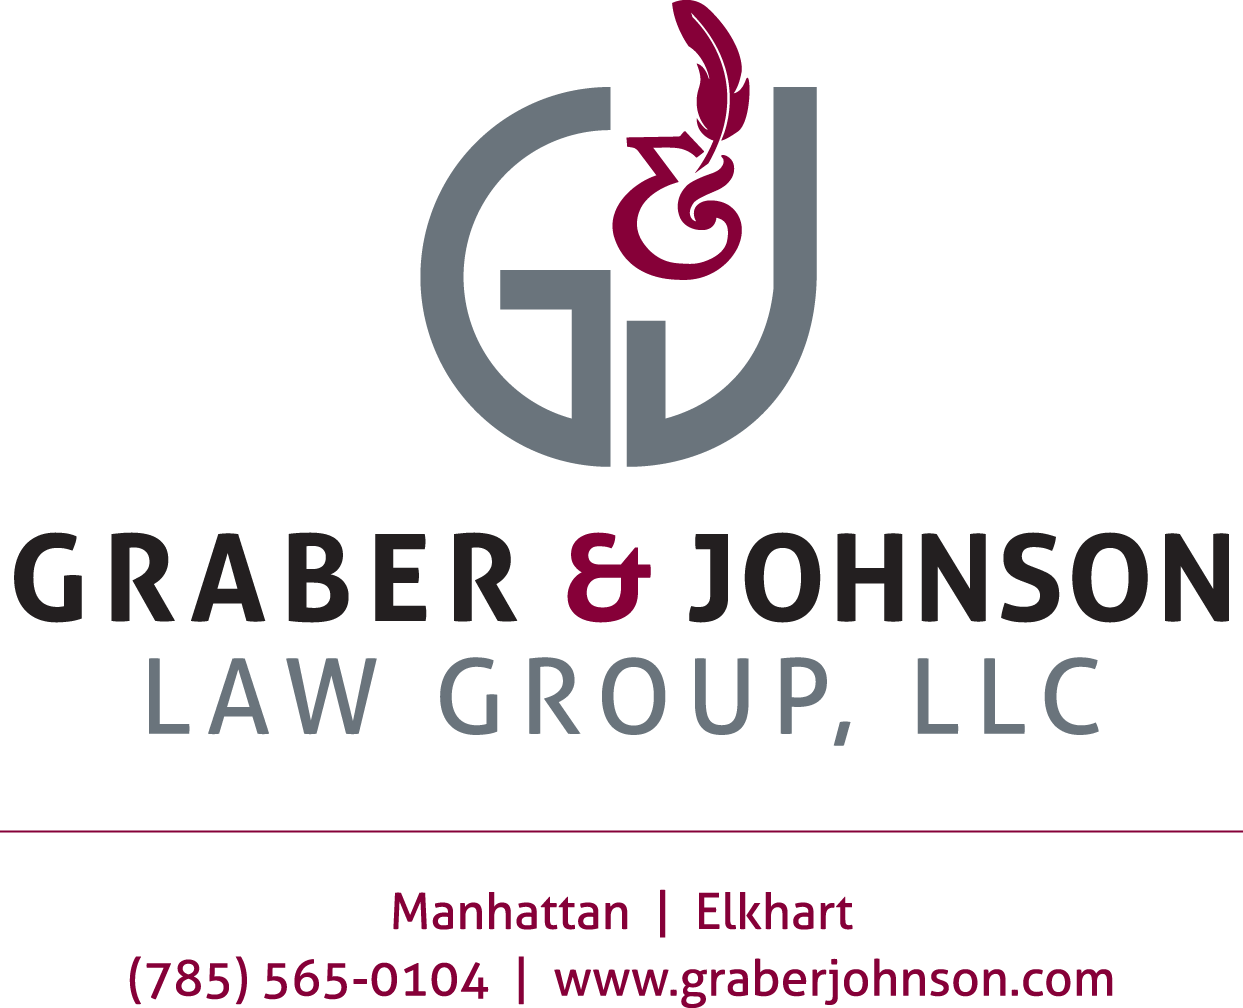 Graber & Johnson Law Group, LLC